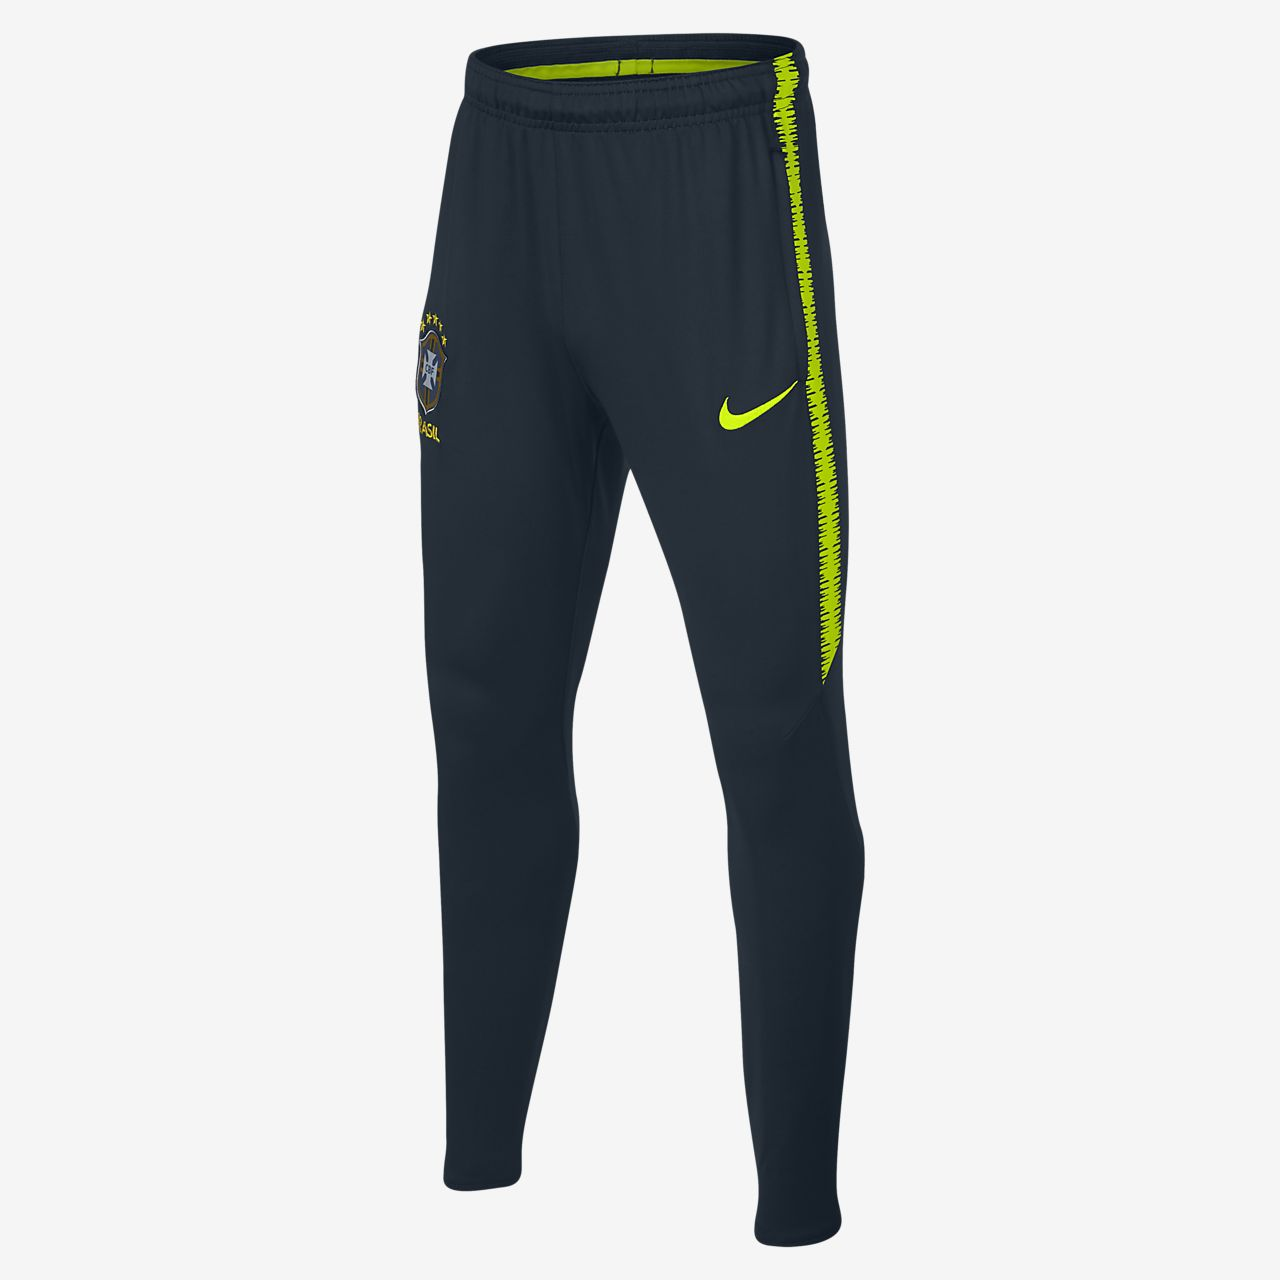 Brazil CBF Dri-FIT Squad Older Kids' Football Pants